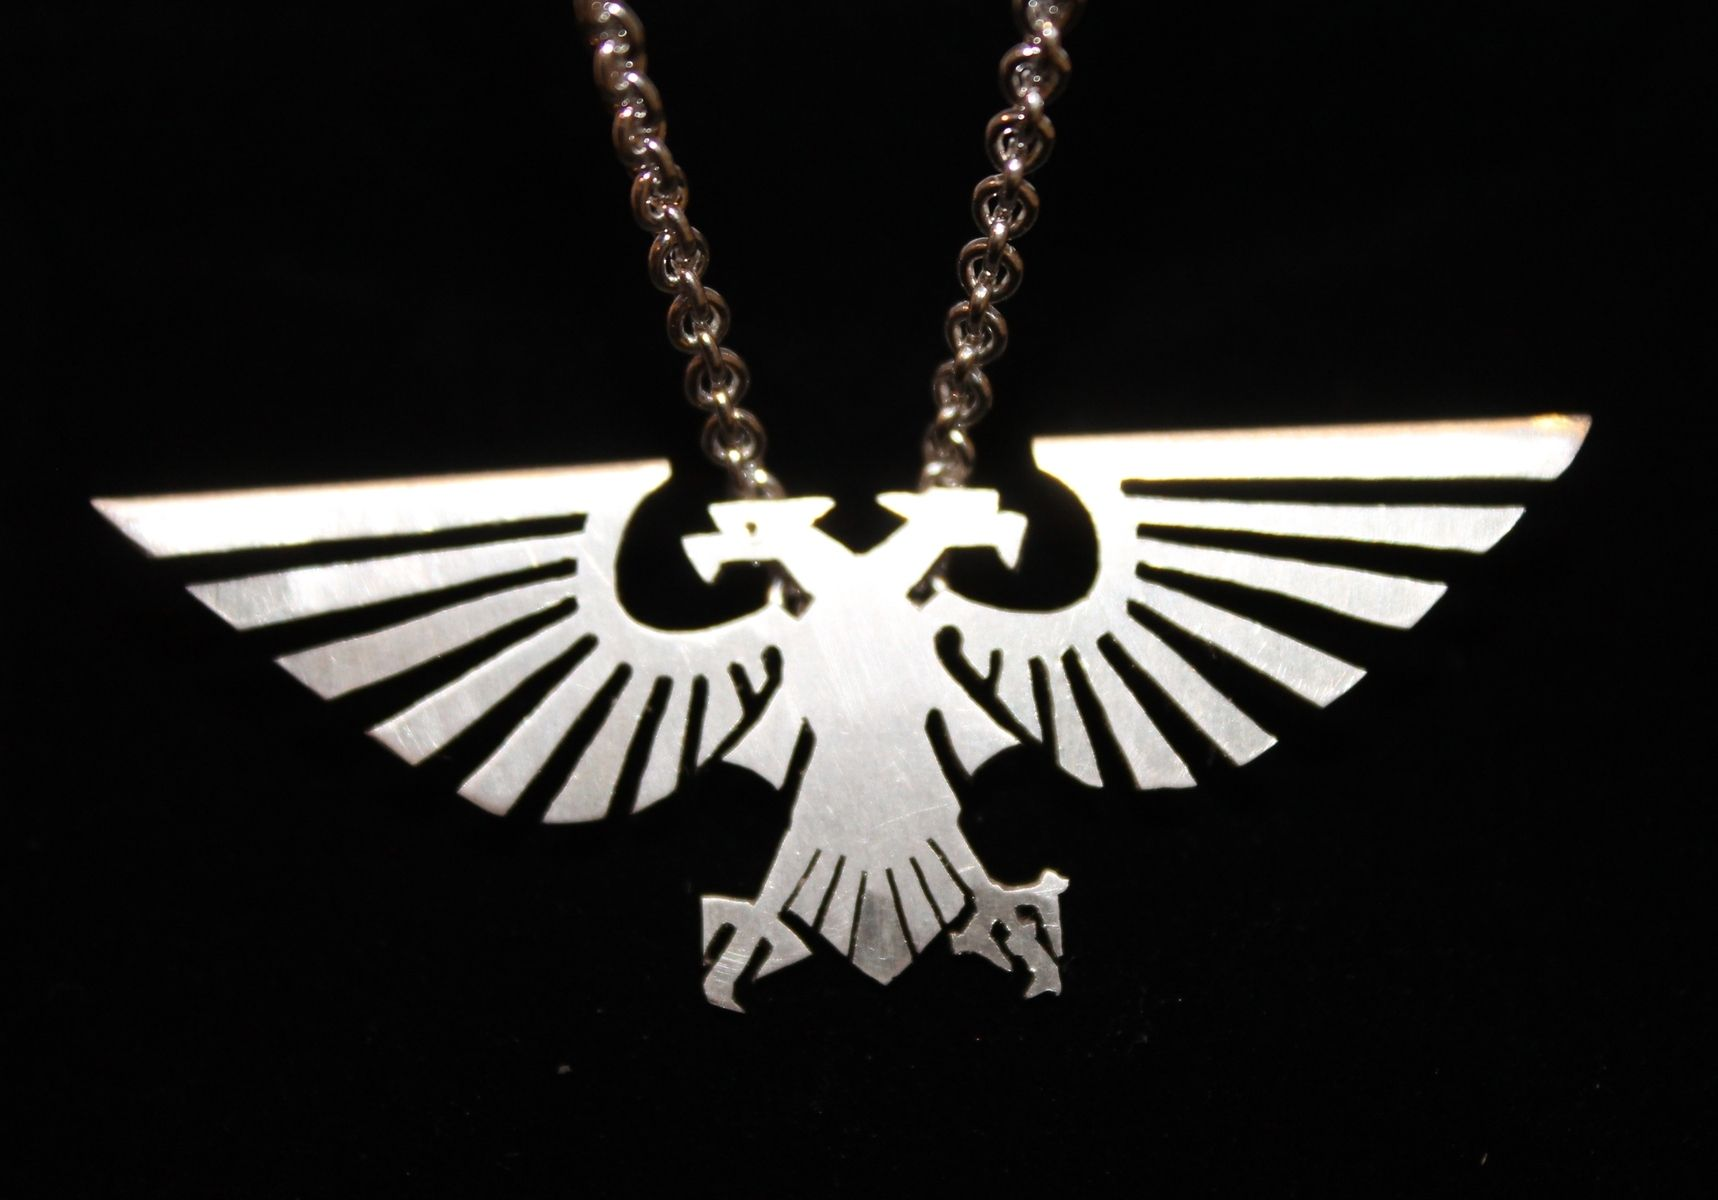 two lsf in made headed custom metal eagle designs pendant by lsfdesignsinmetal